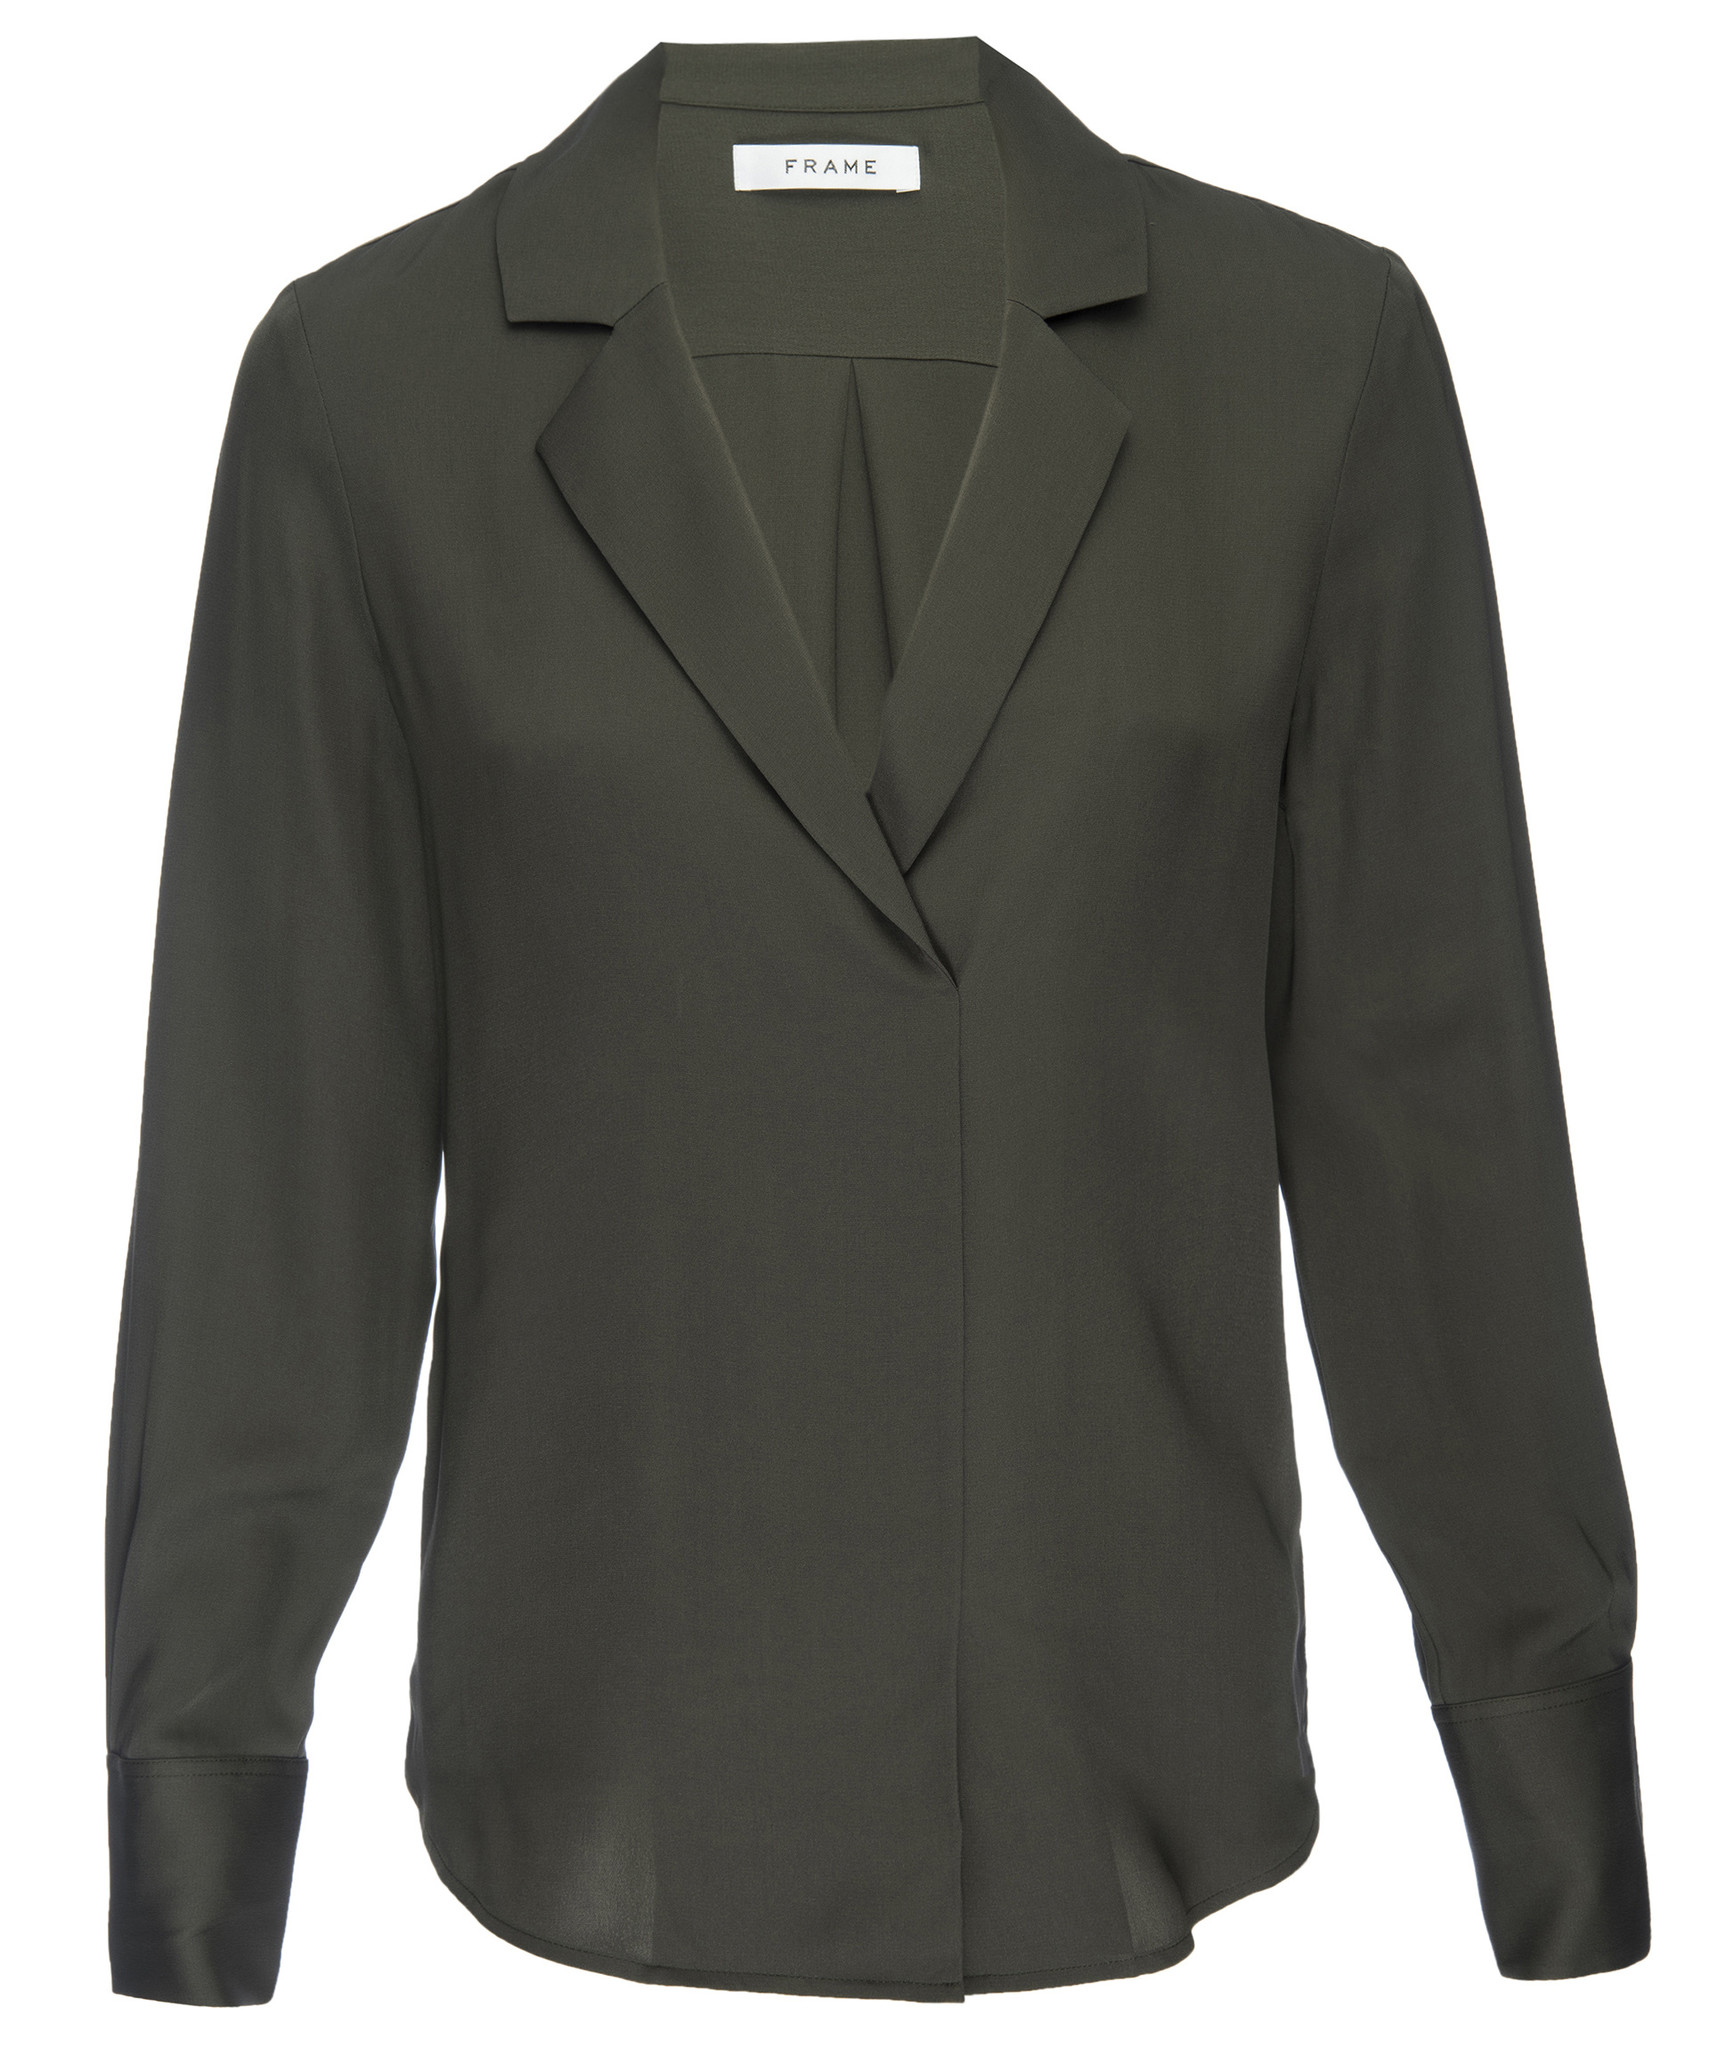 FRAME Fitted Notch Collar Blouse